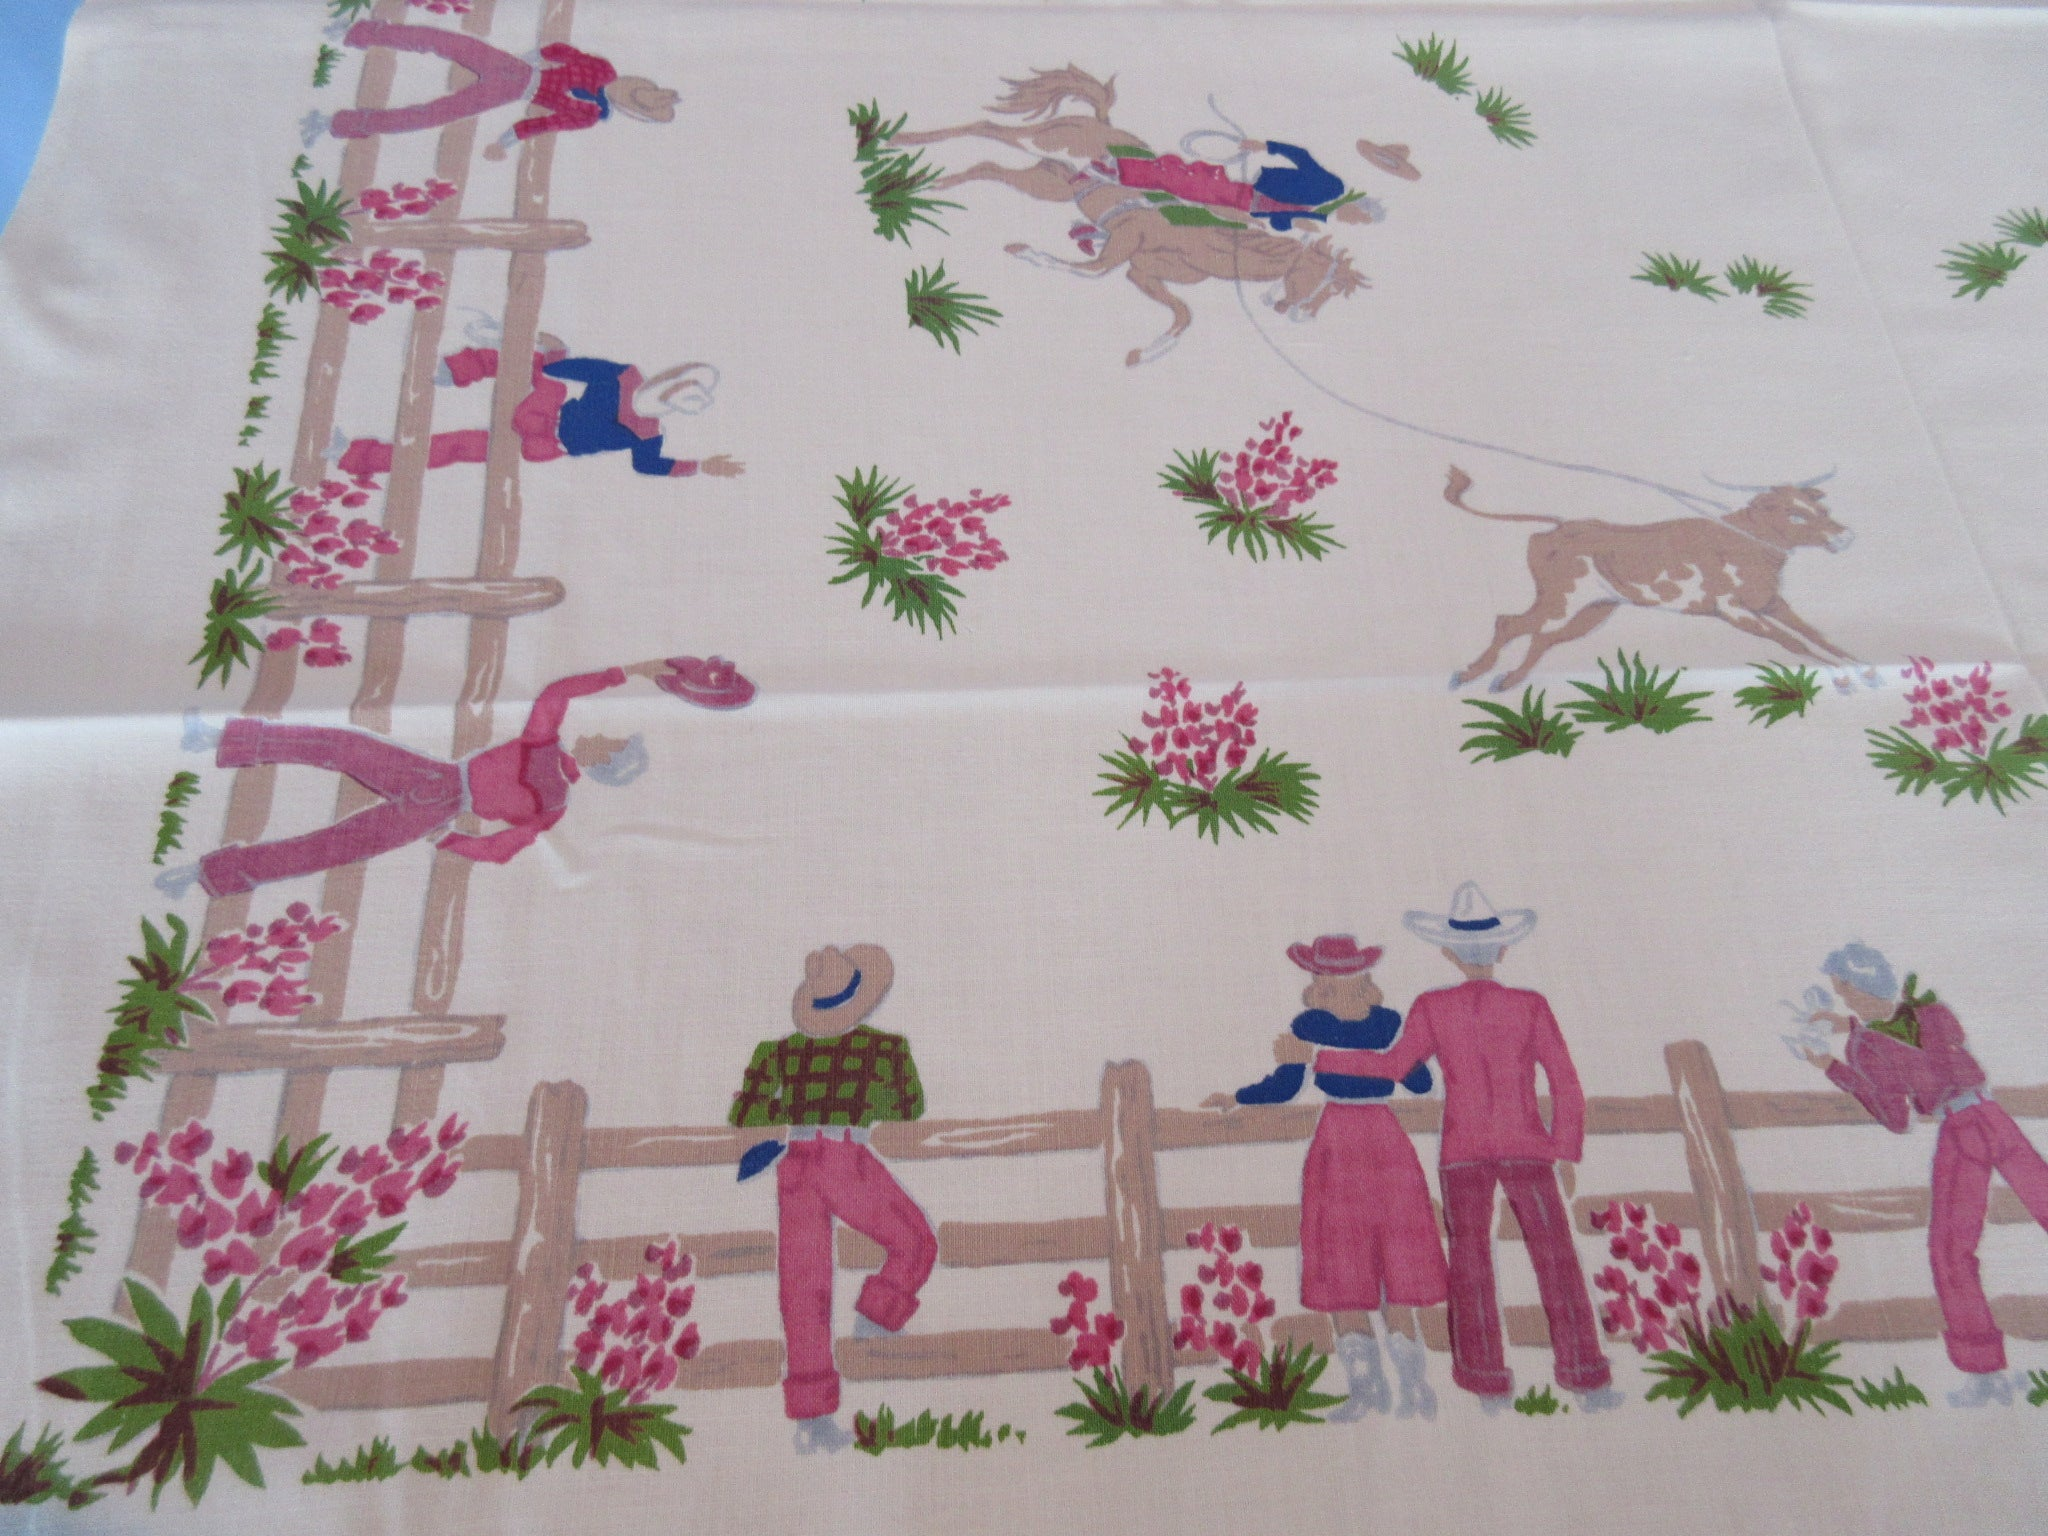 Shabby Cowboys Cowgirls Horses Fence Novelty Vintage Printed Tablecloth (50 X 45)